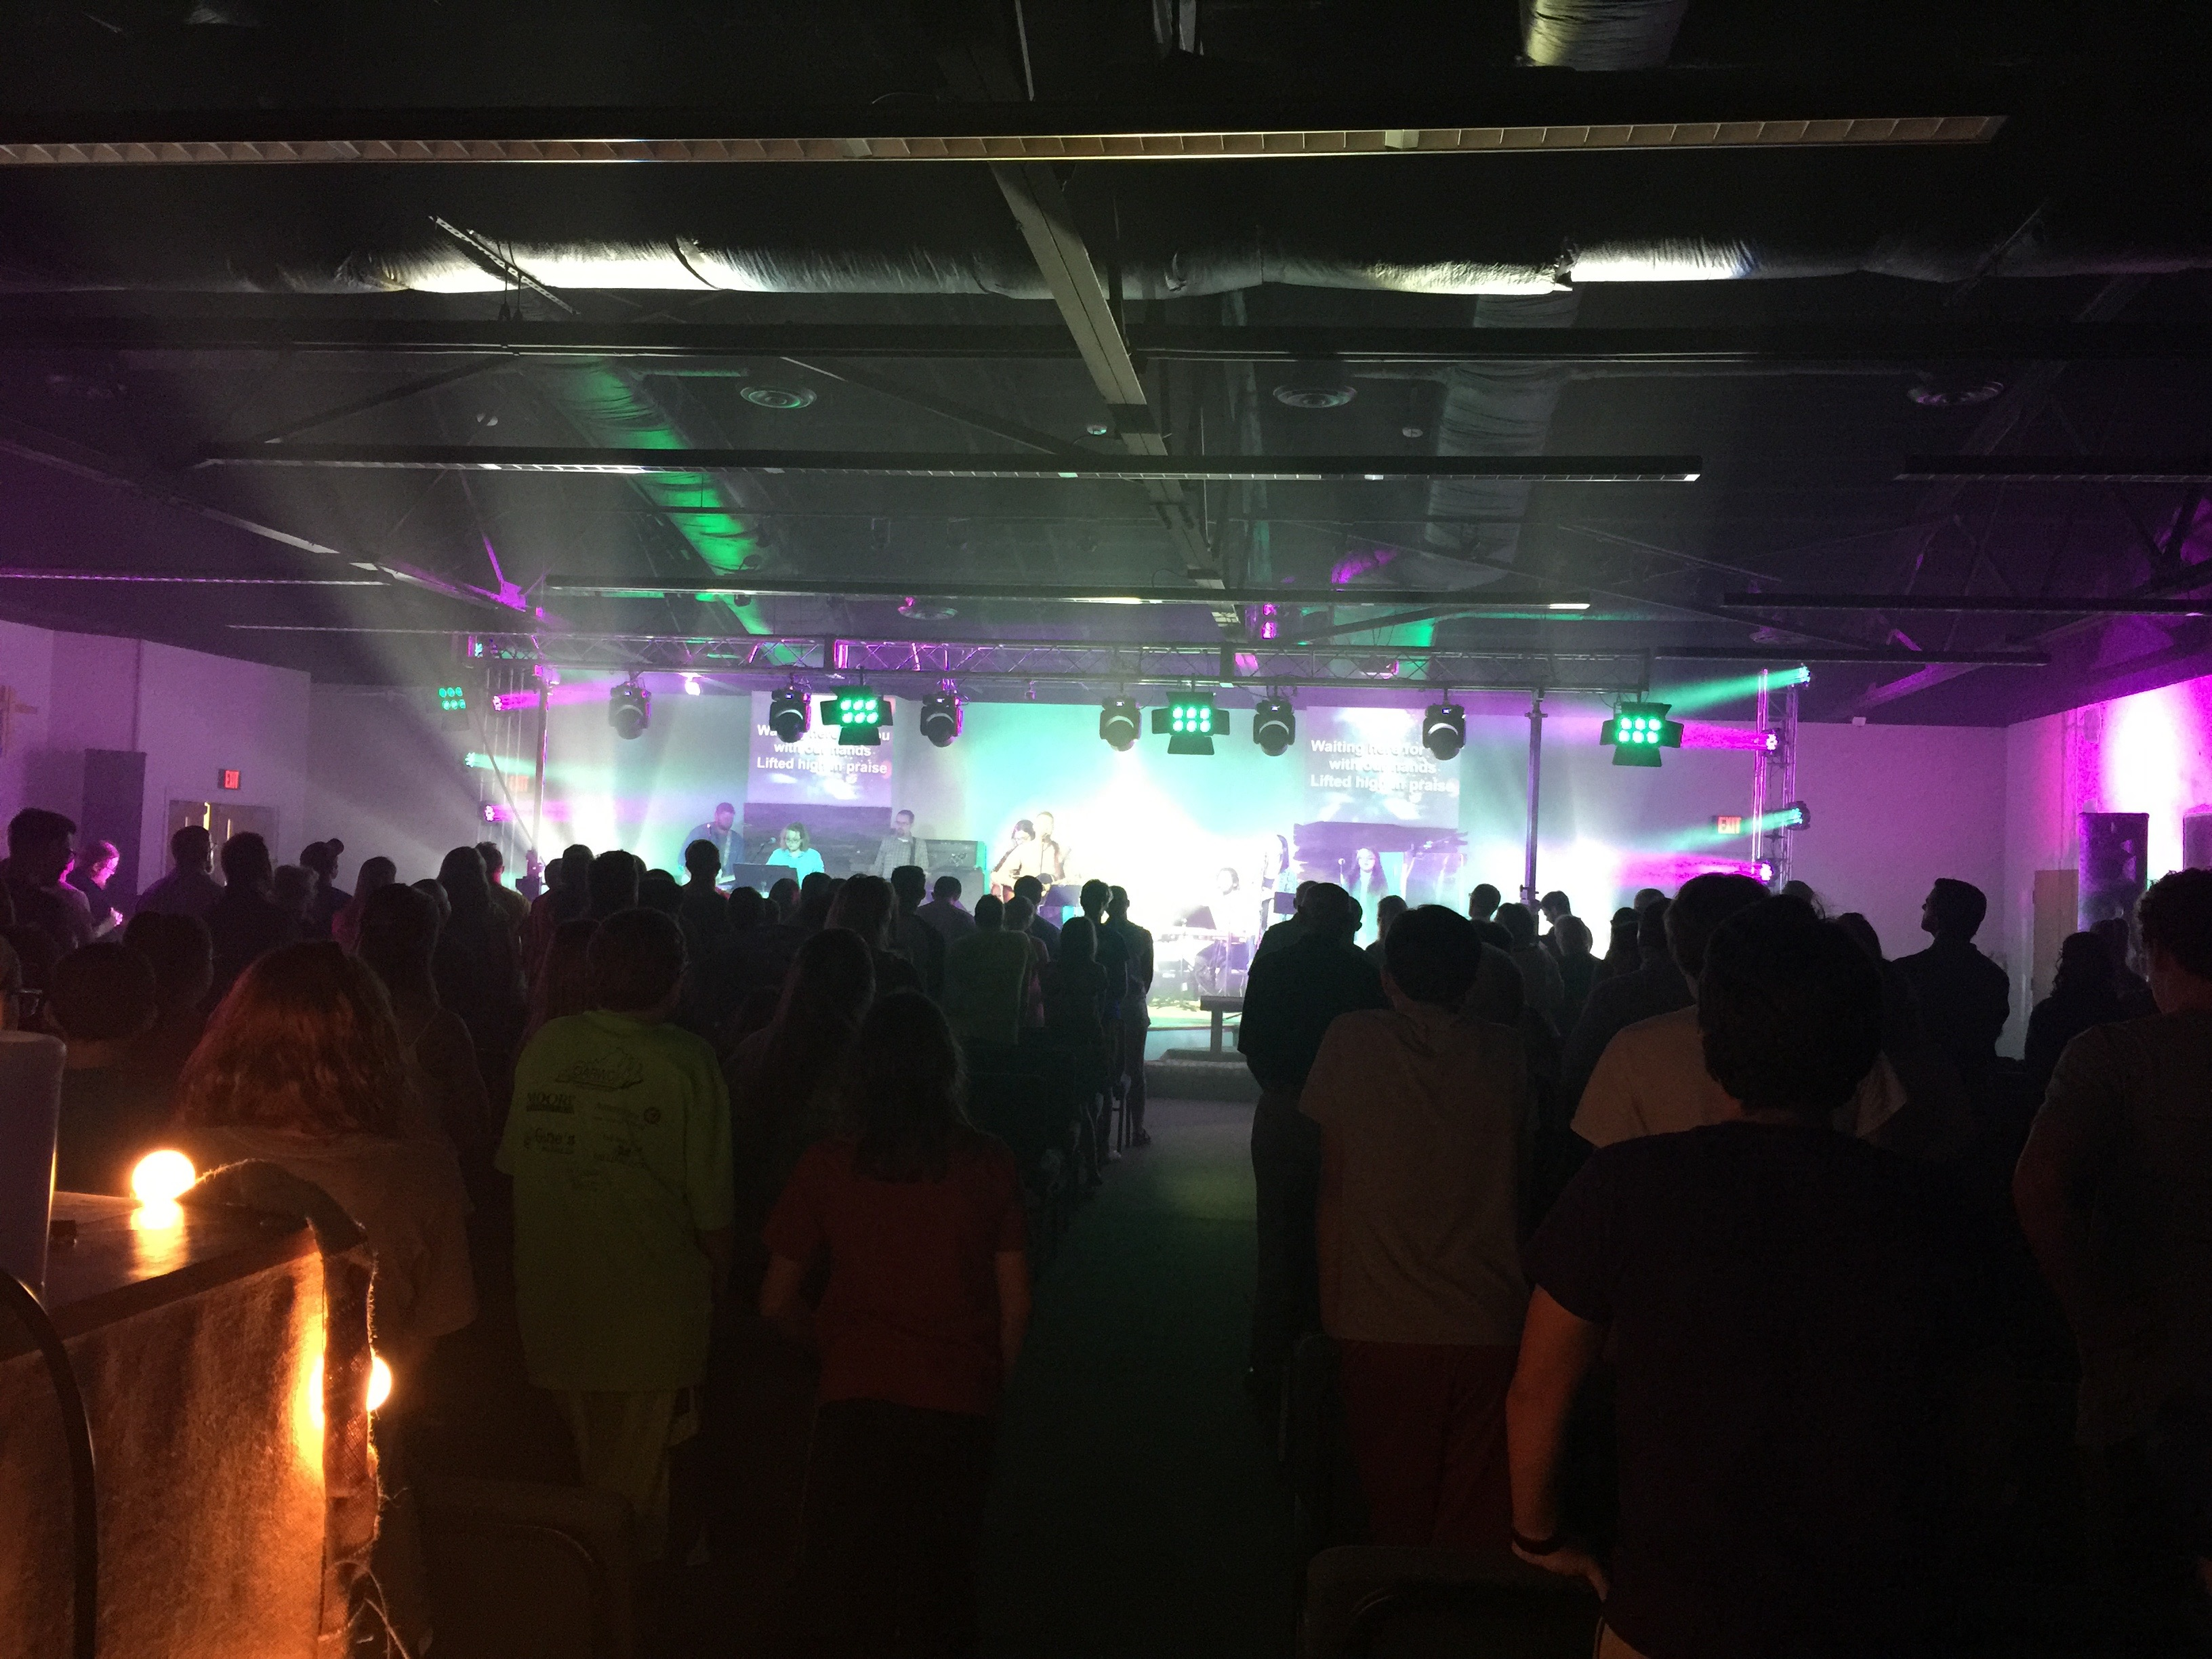 Shop Lighting Fixtures Led Night Of Worship Stage Lighting Owensboro, Ky | Concept